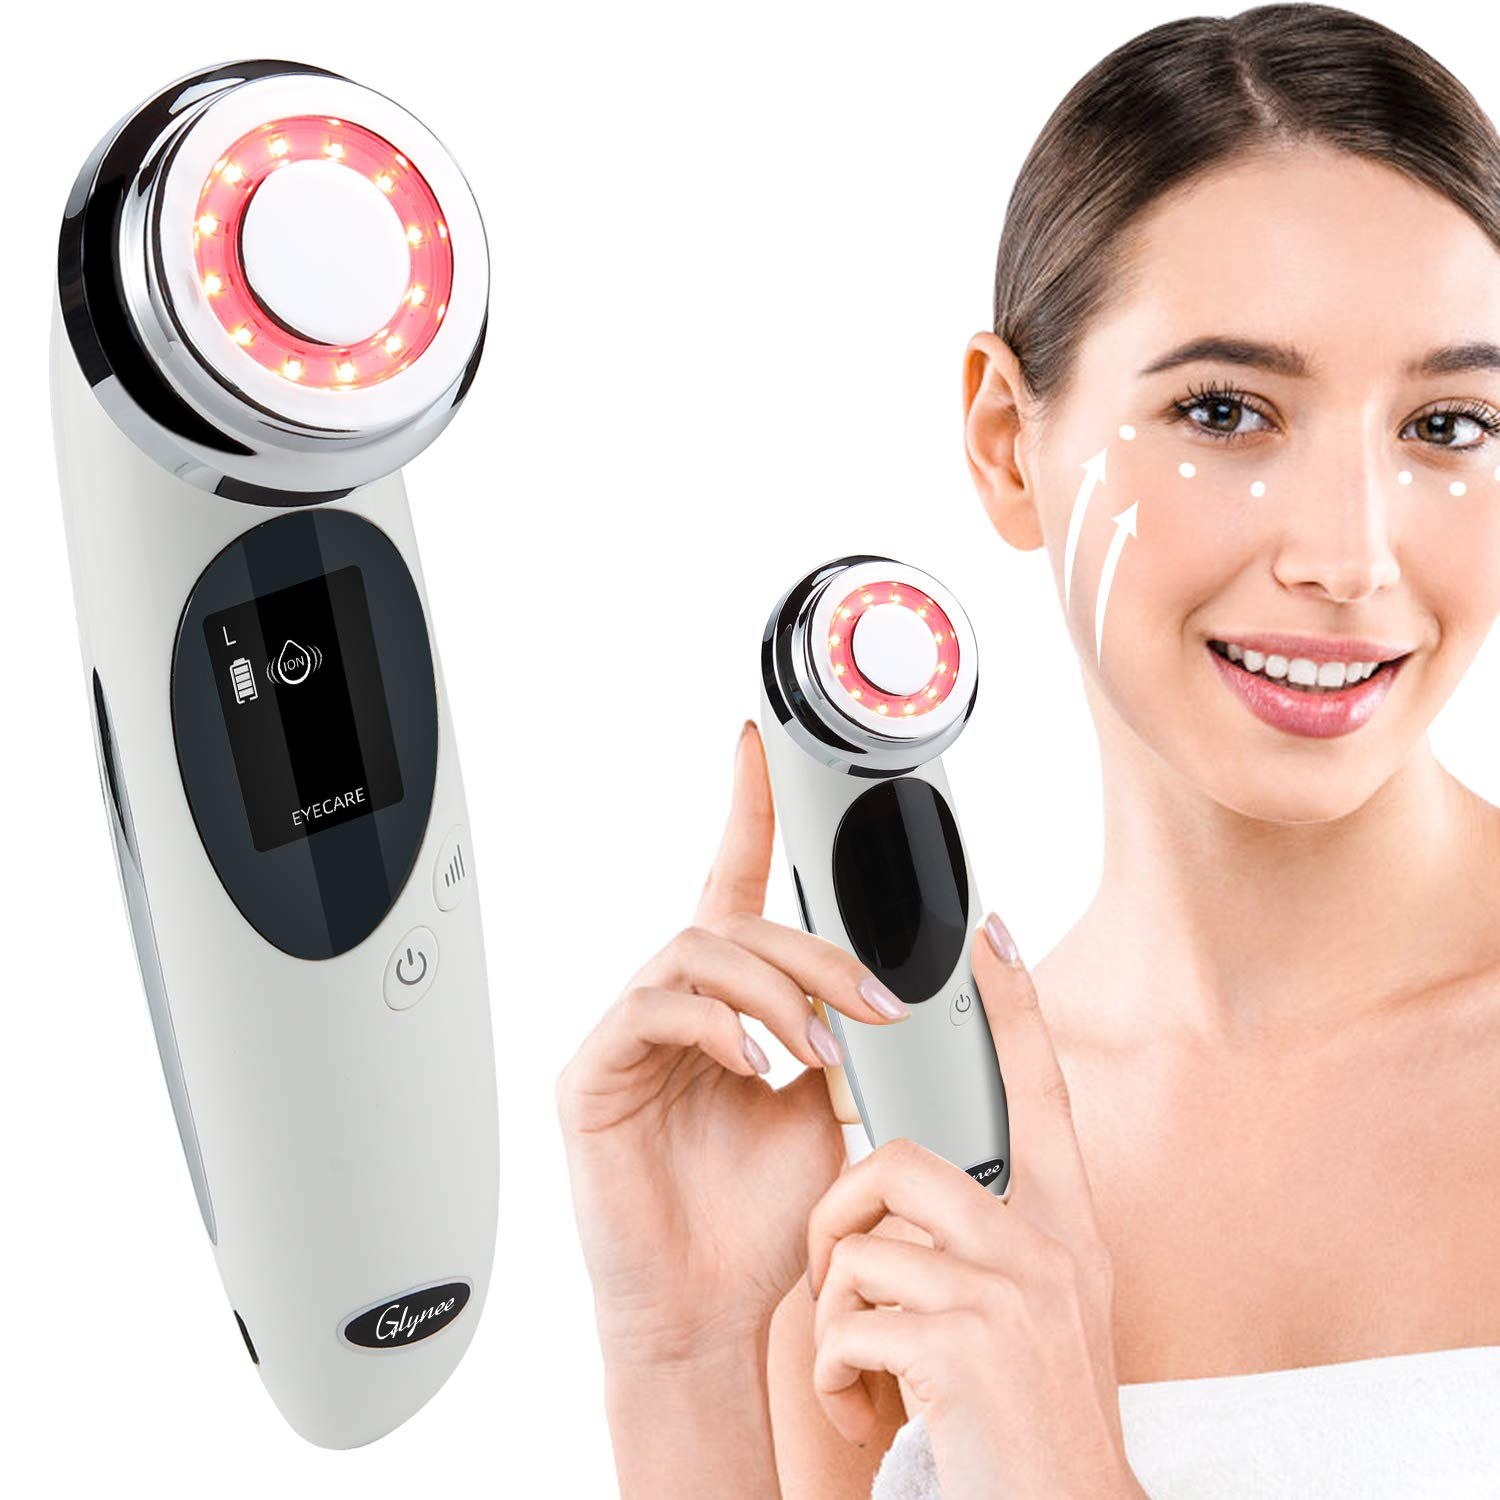 4 in 1 Face Massager,Glynee Daily Care Firming Vibration Facial Massage Beauty Device Face Eye Roller Machine Warm Deep Clean Face Lifting Tighten Anti Aging Device Promote Absorption